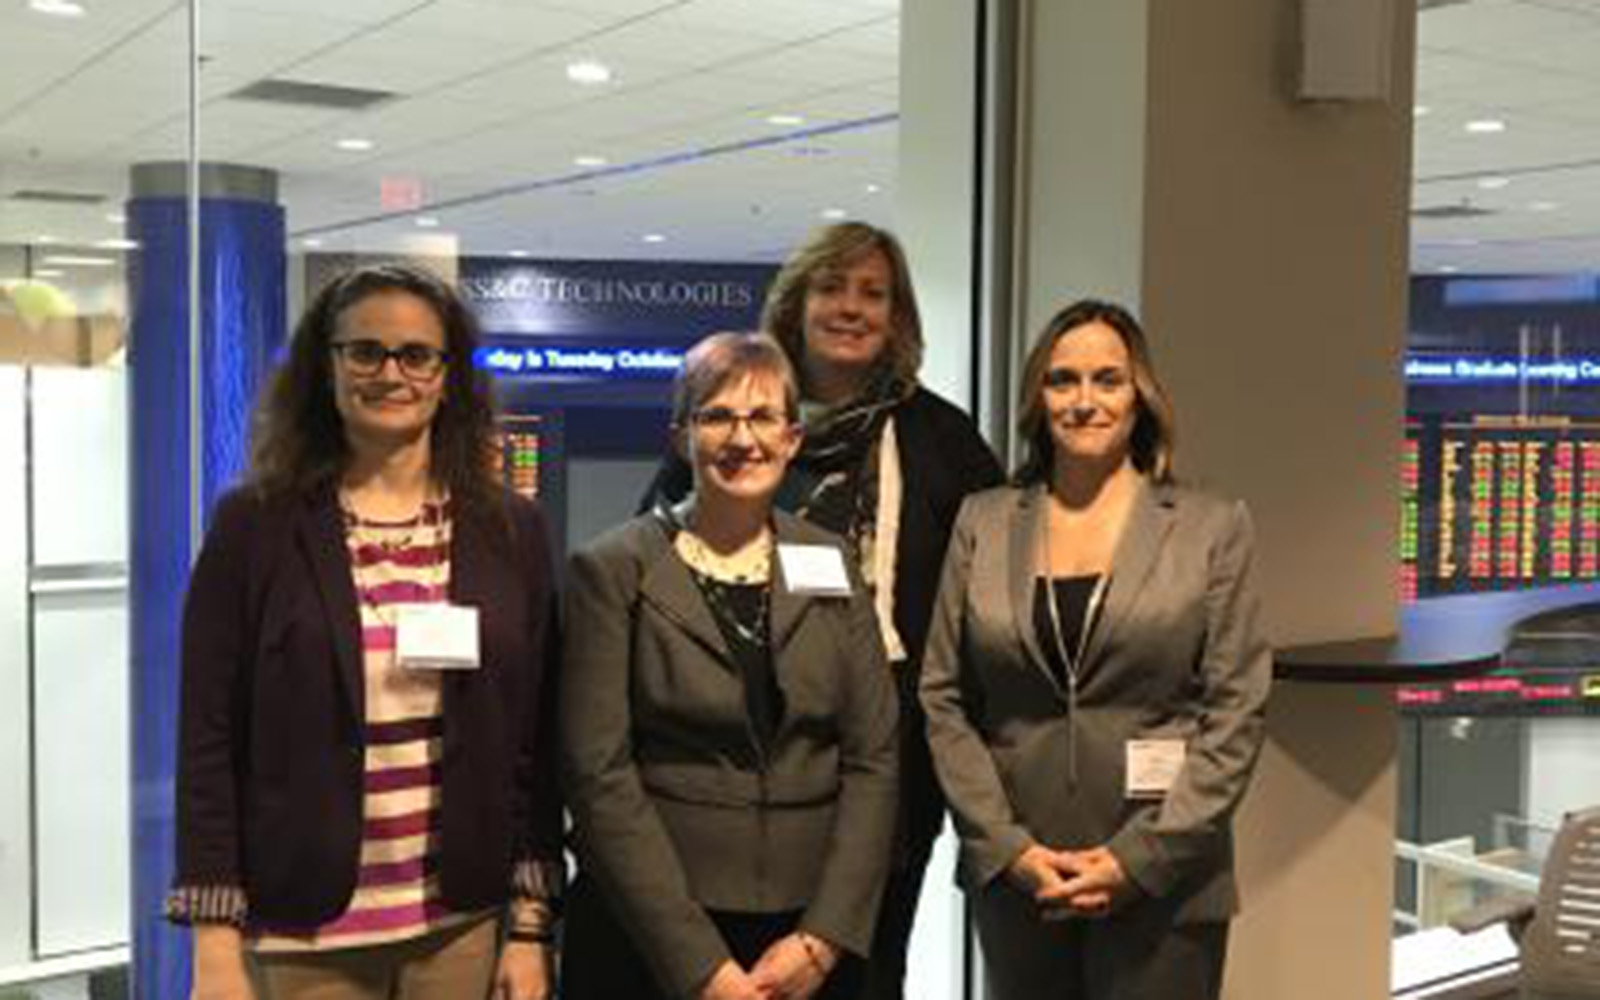 Left to Right, Emma Palmacci, Nancy Lennert '15 MBA, Lucy Gilson, and Robin Fowler '97 during the 2018 NAWMBA Conference.